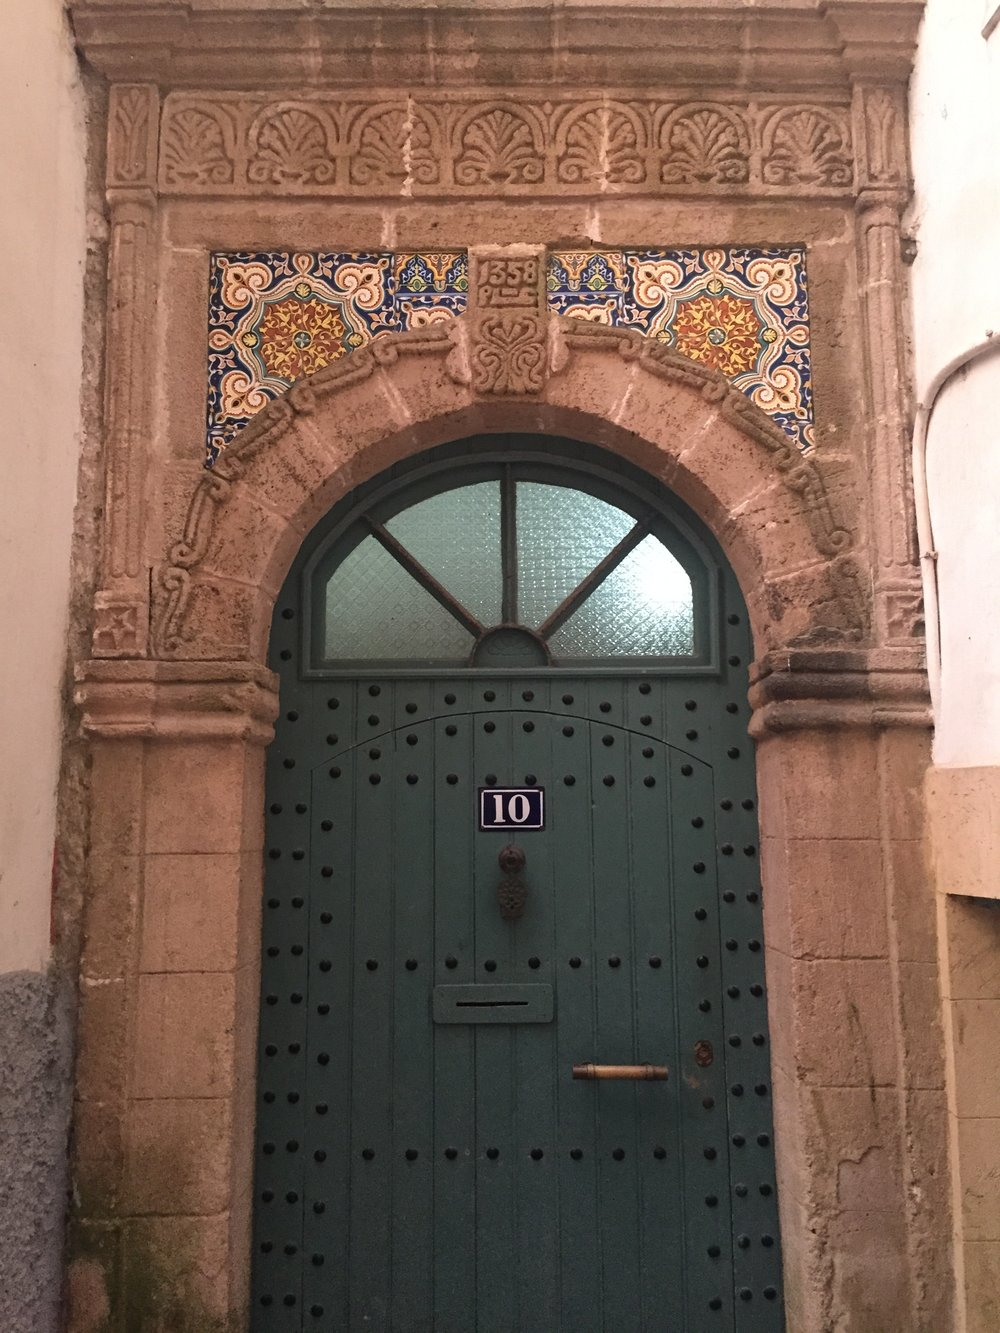 The entrance door to Maison des Palmiers